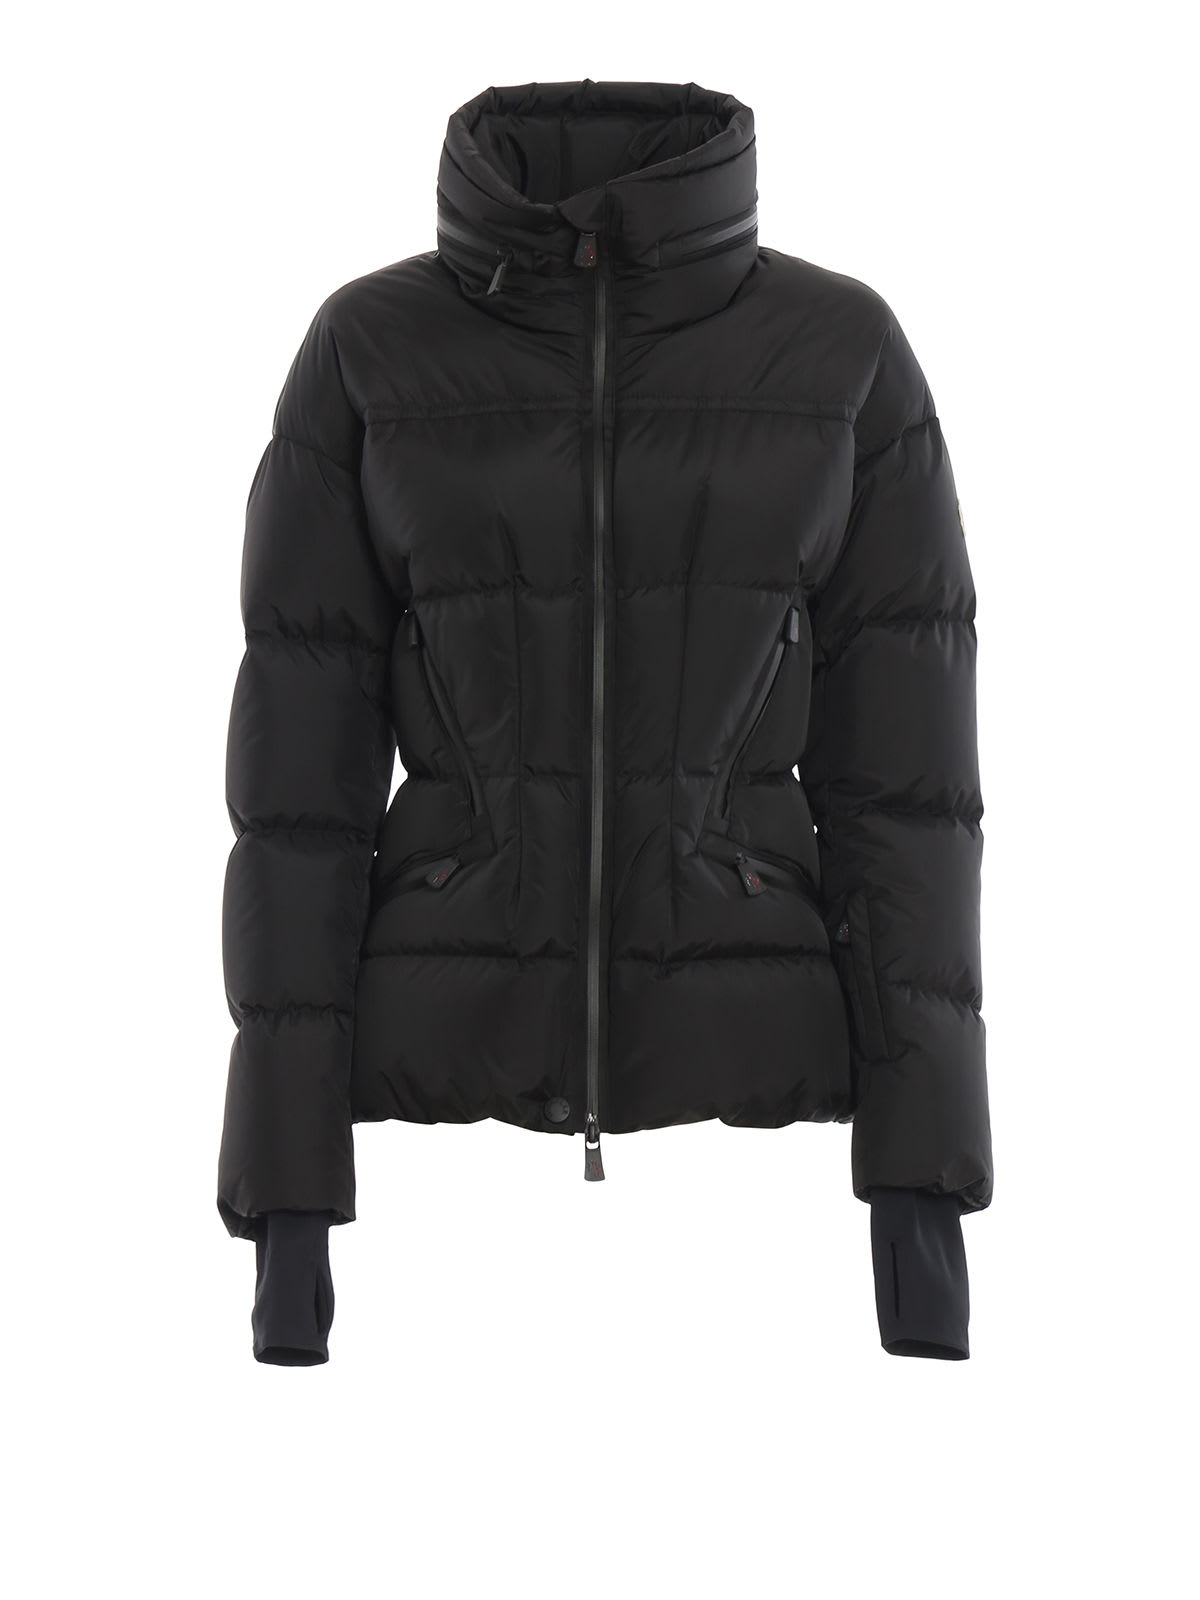 Moncler Grenoble Dixence Jacket